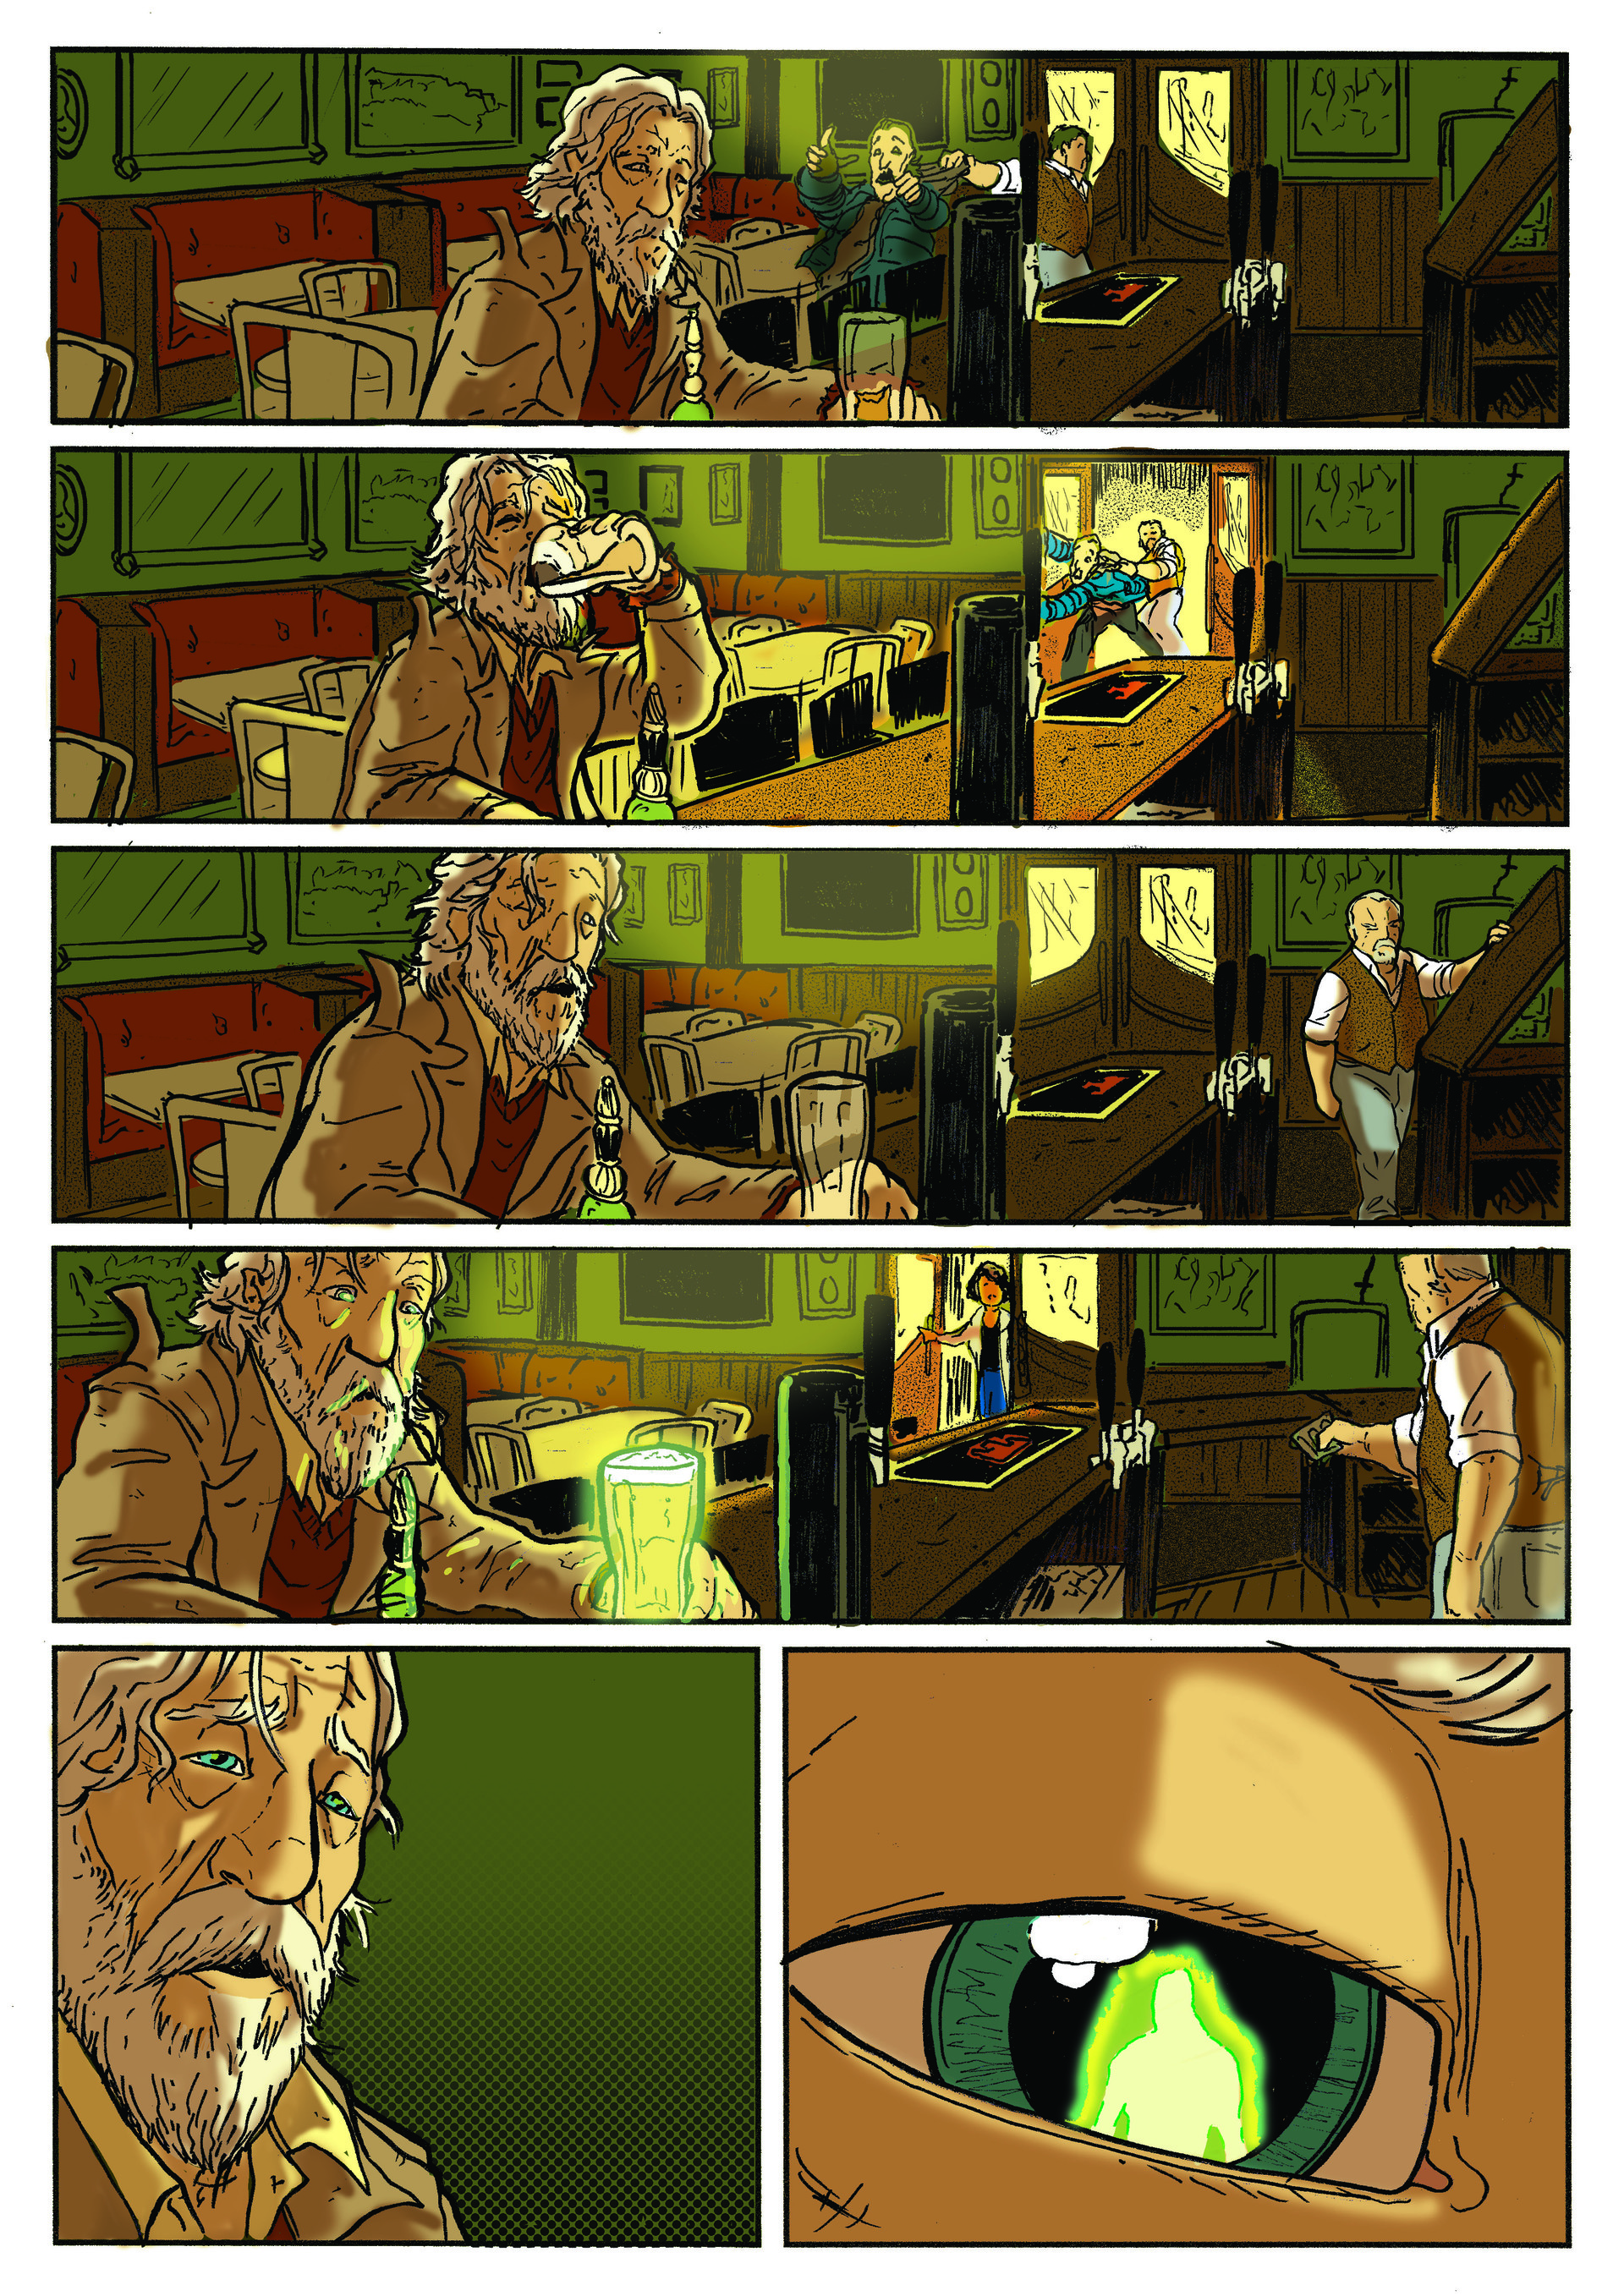 Elliot balson u page4 colours